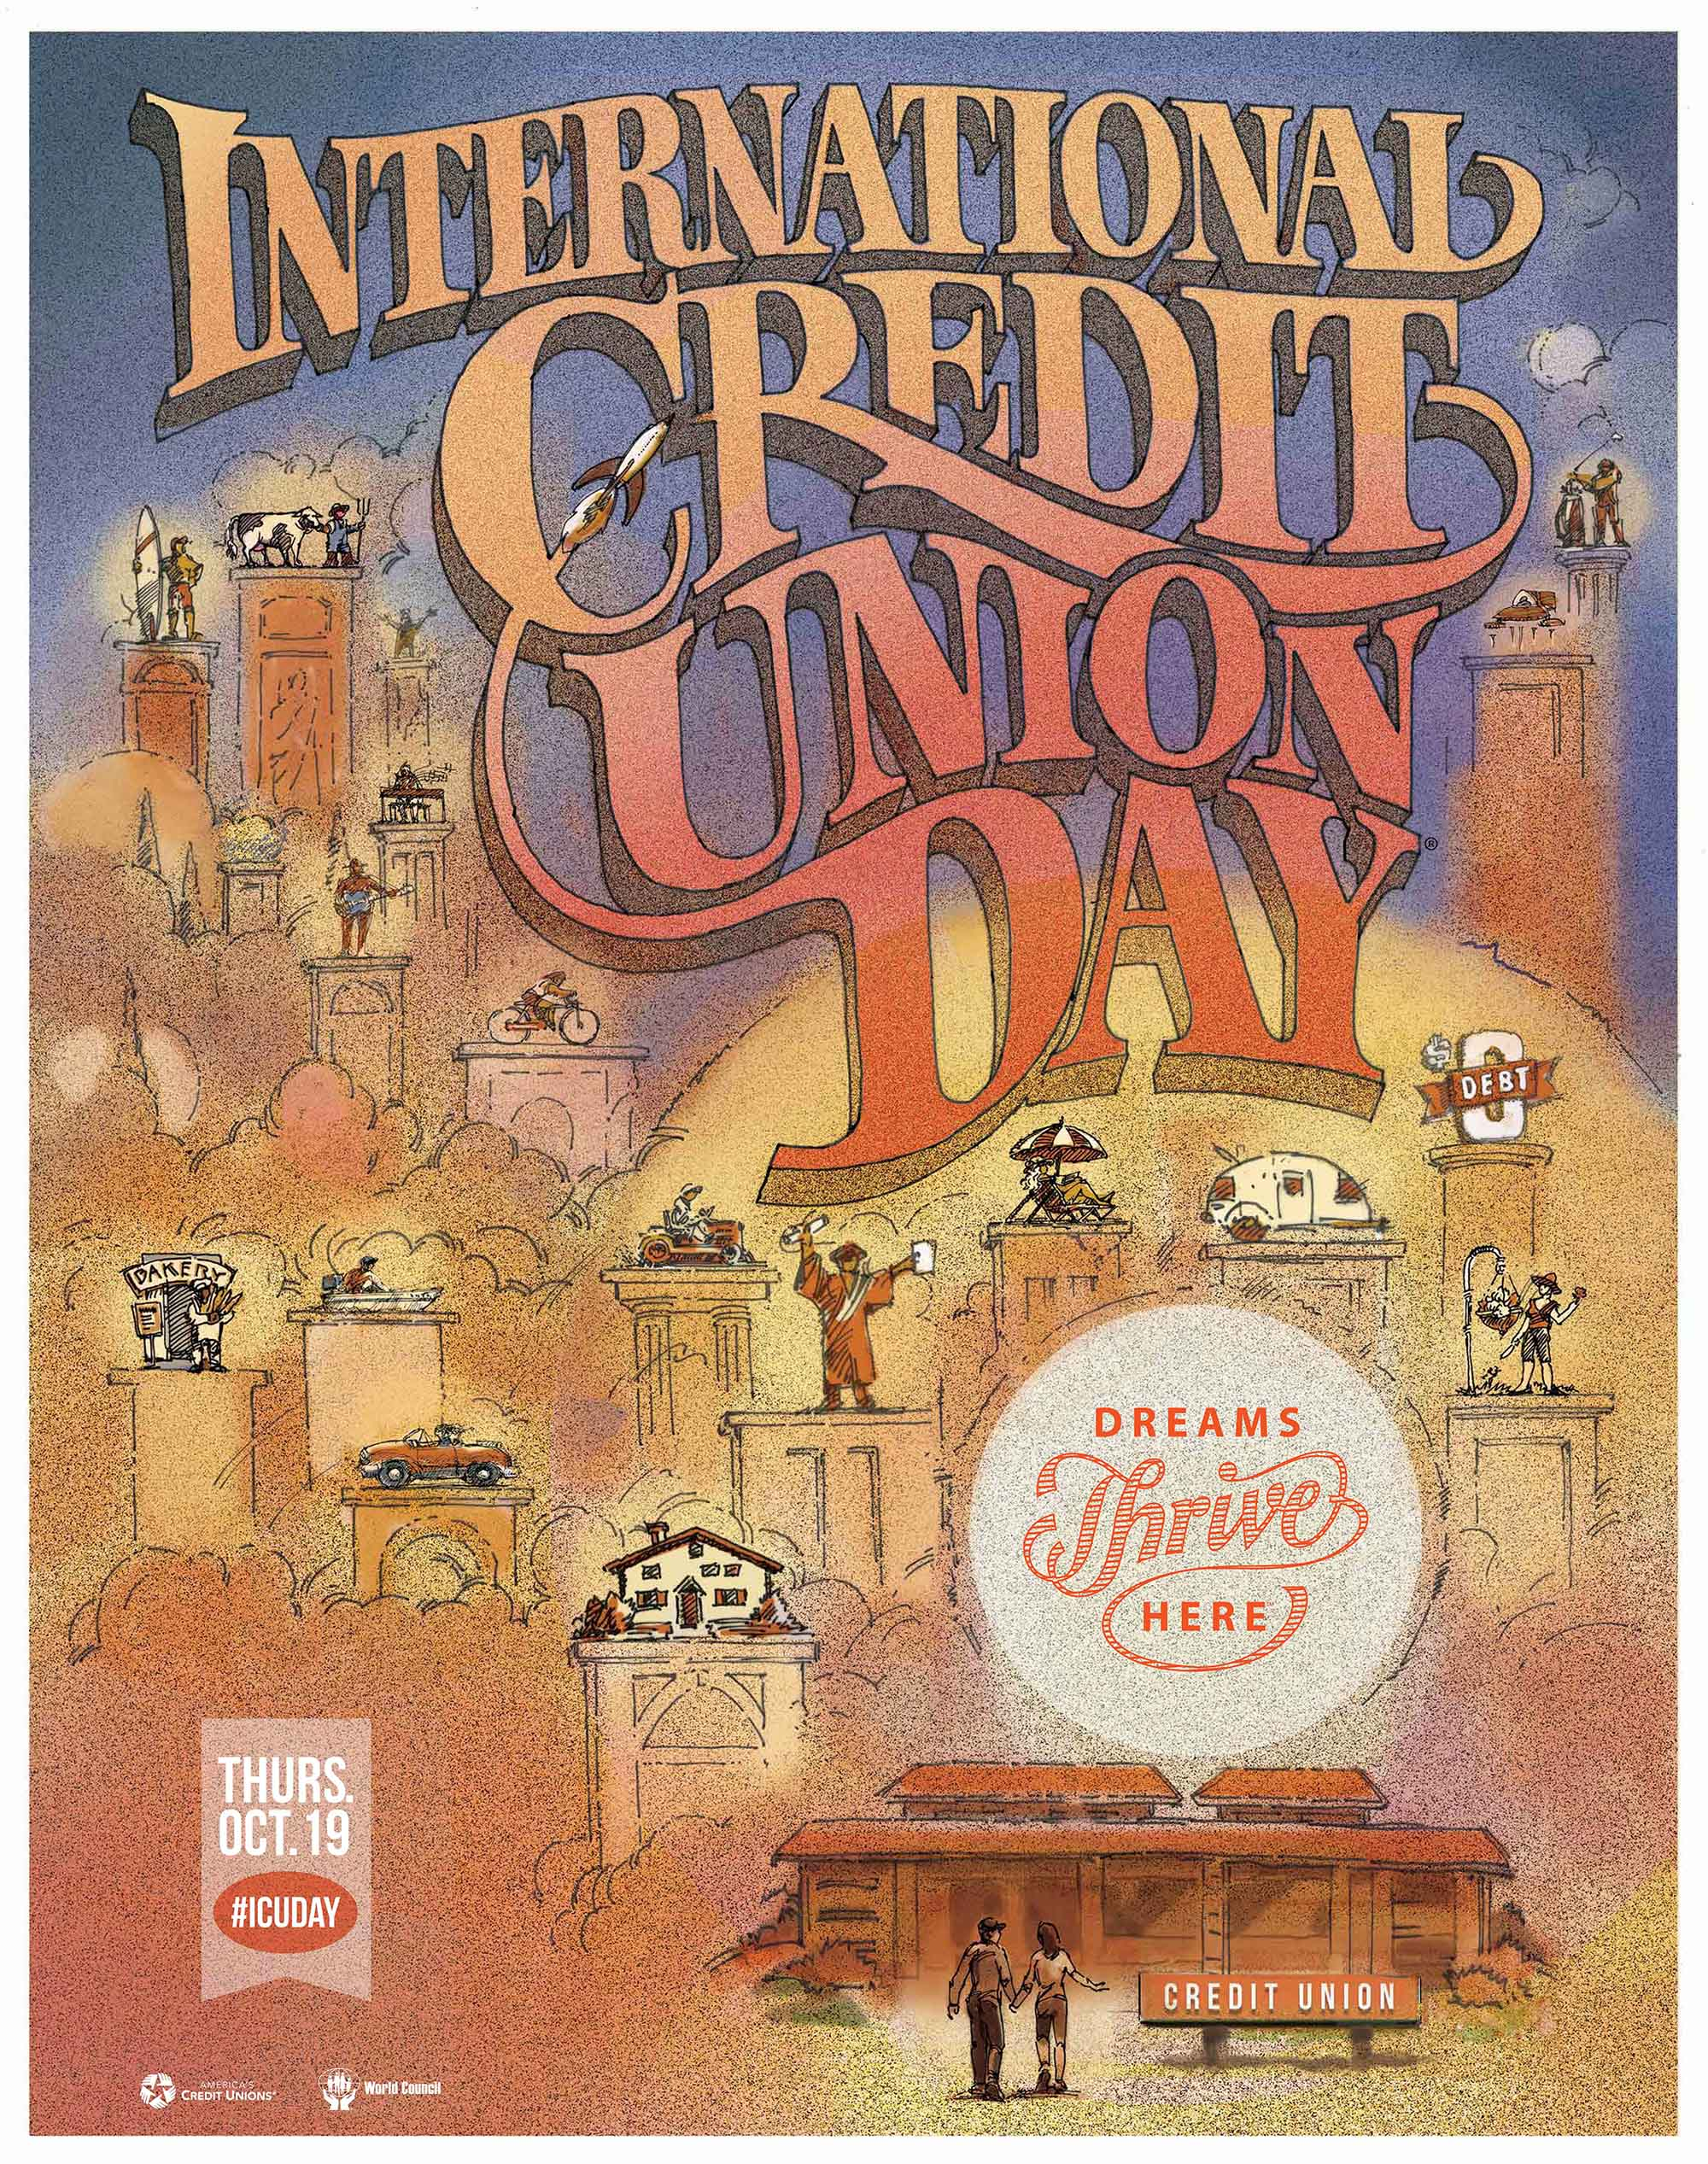 International Credit Union Day Poster